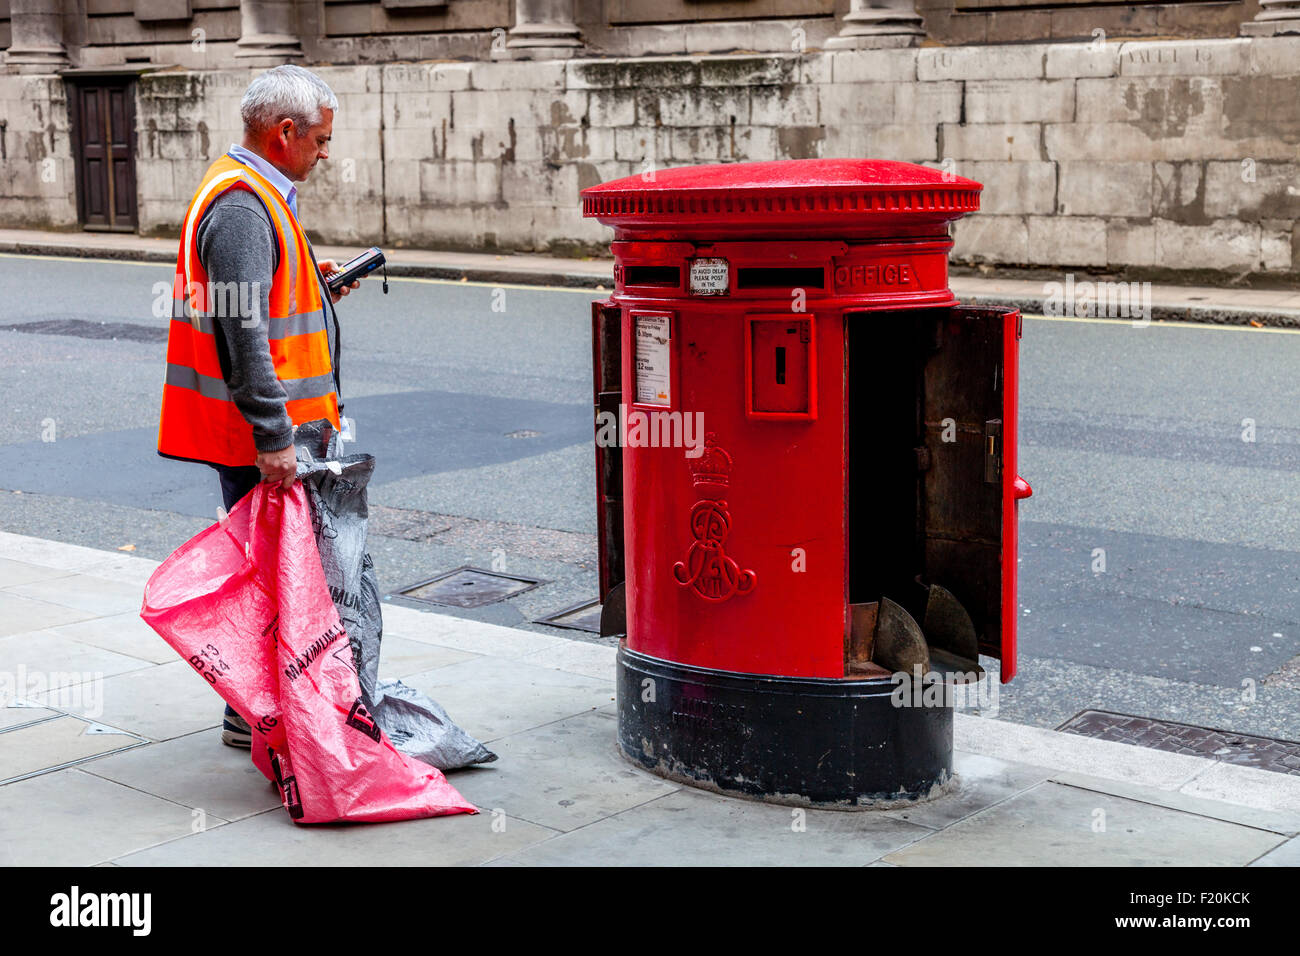 A Royal Mail Worker Collects The Mail From A Post Box In Central London, England - Stock Image